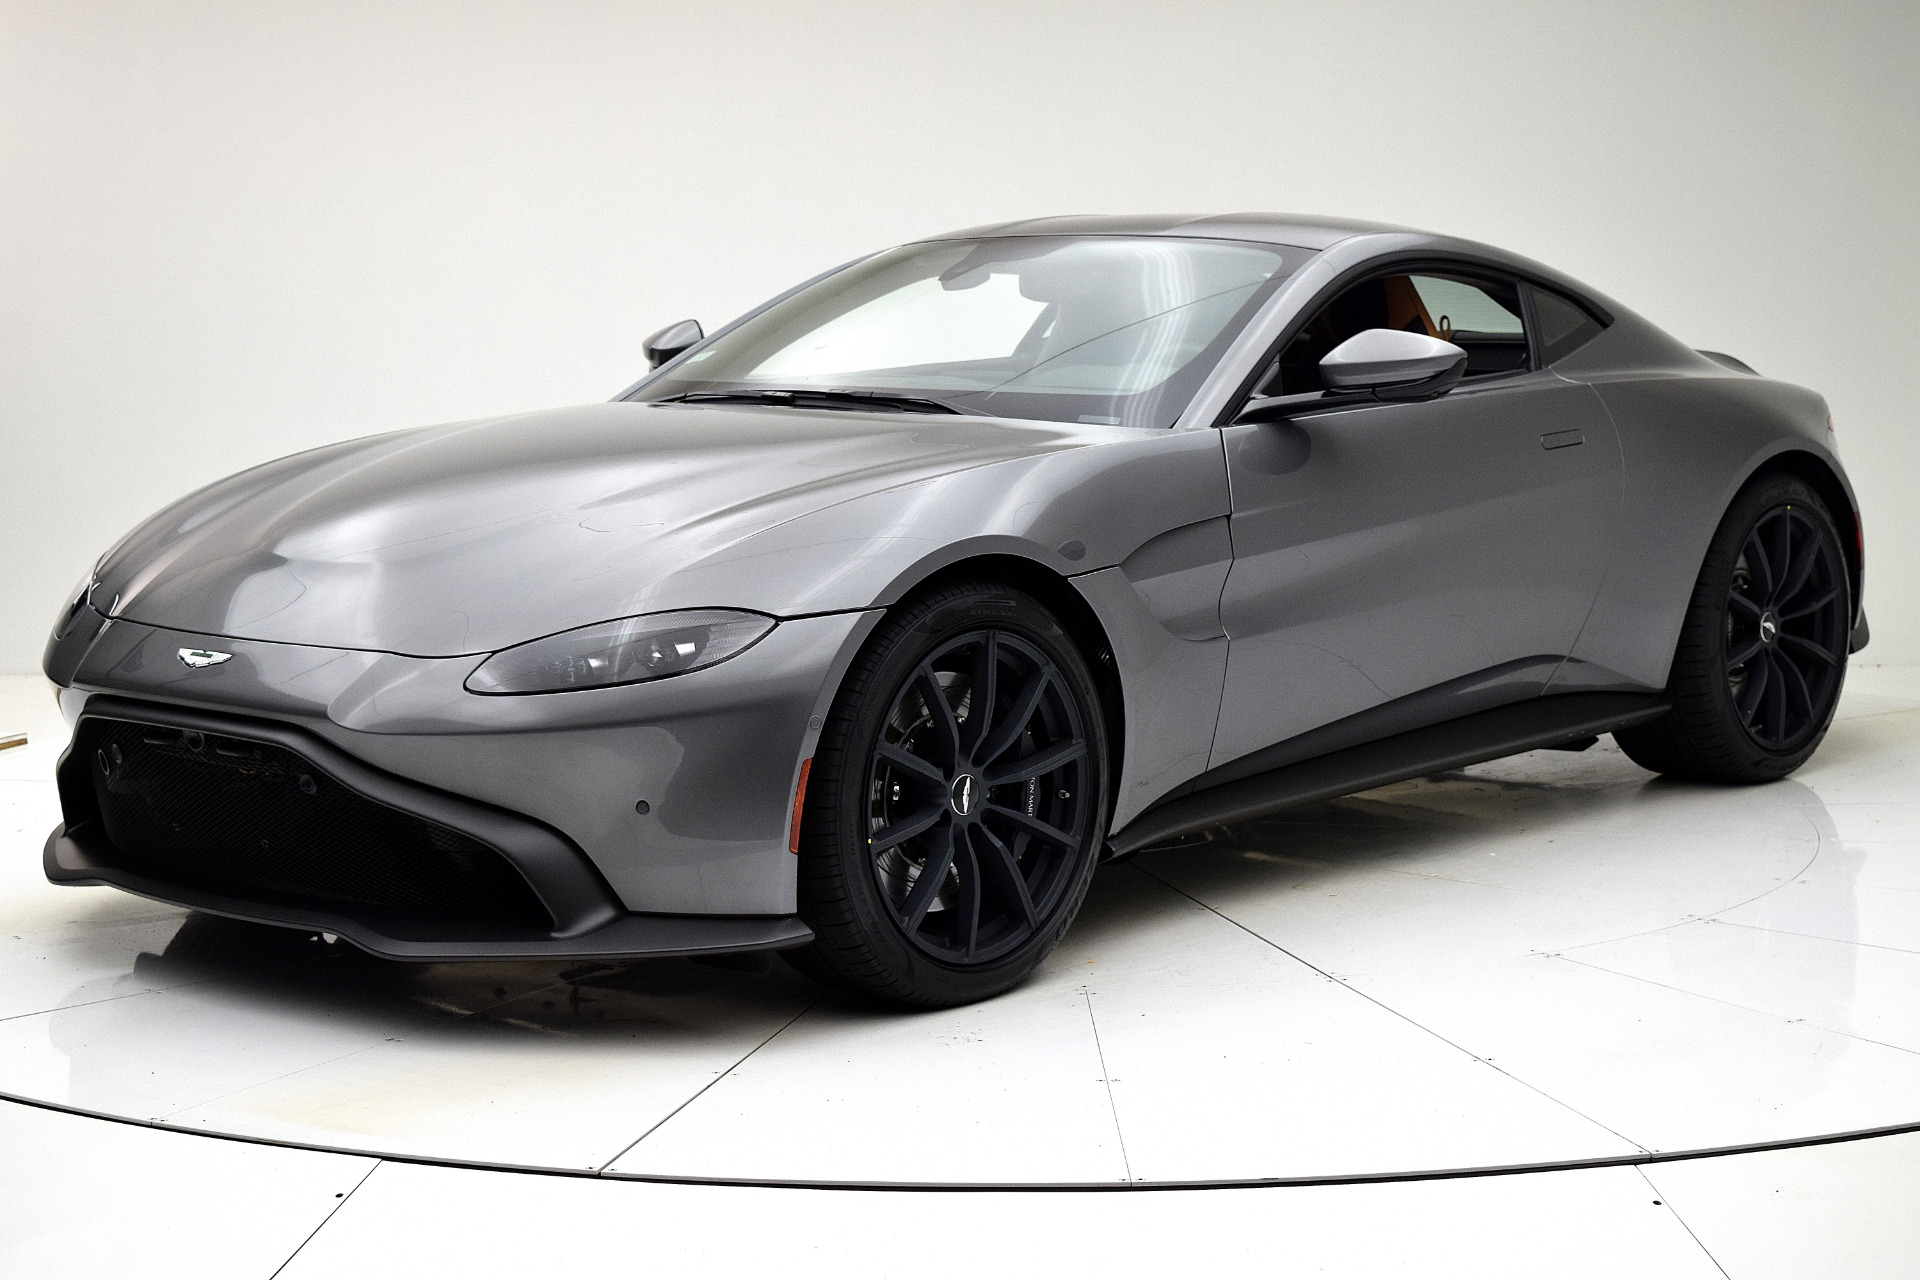 New 2020 Aston Martin Vantage Coupe for sale Sold at F.C. Kerbeck Aston Martin in Palmyra NJ 08065 2